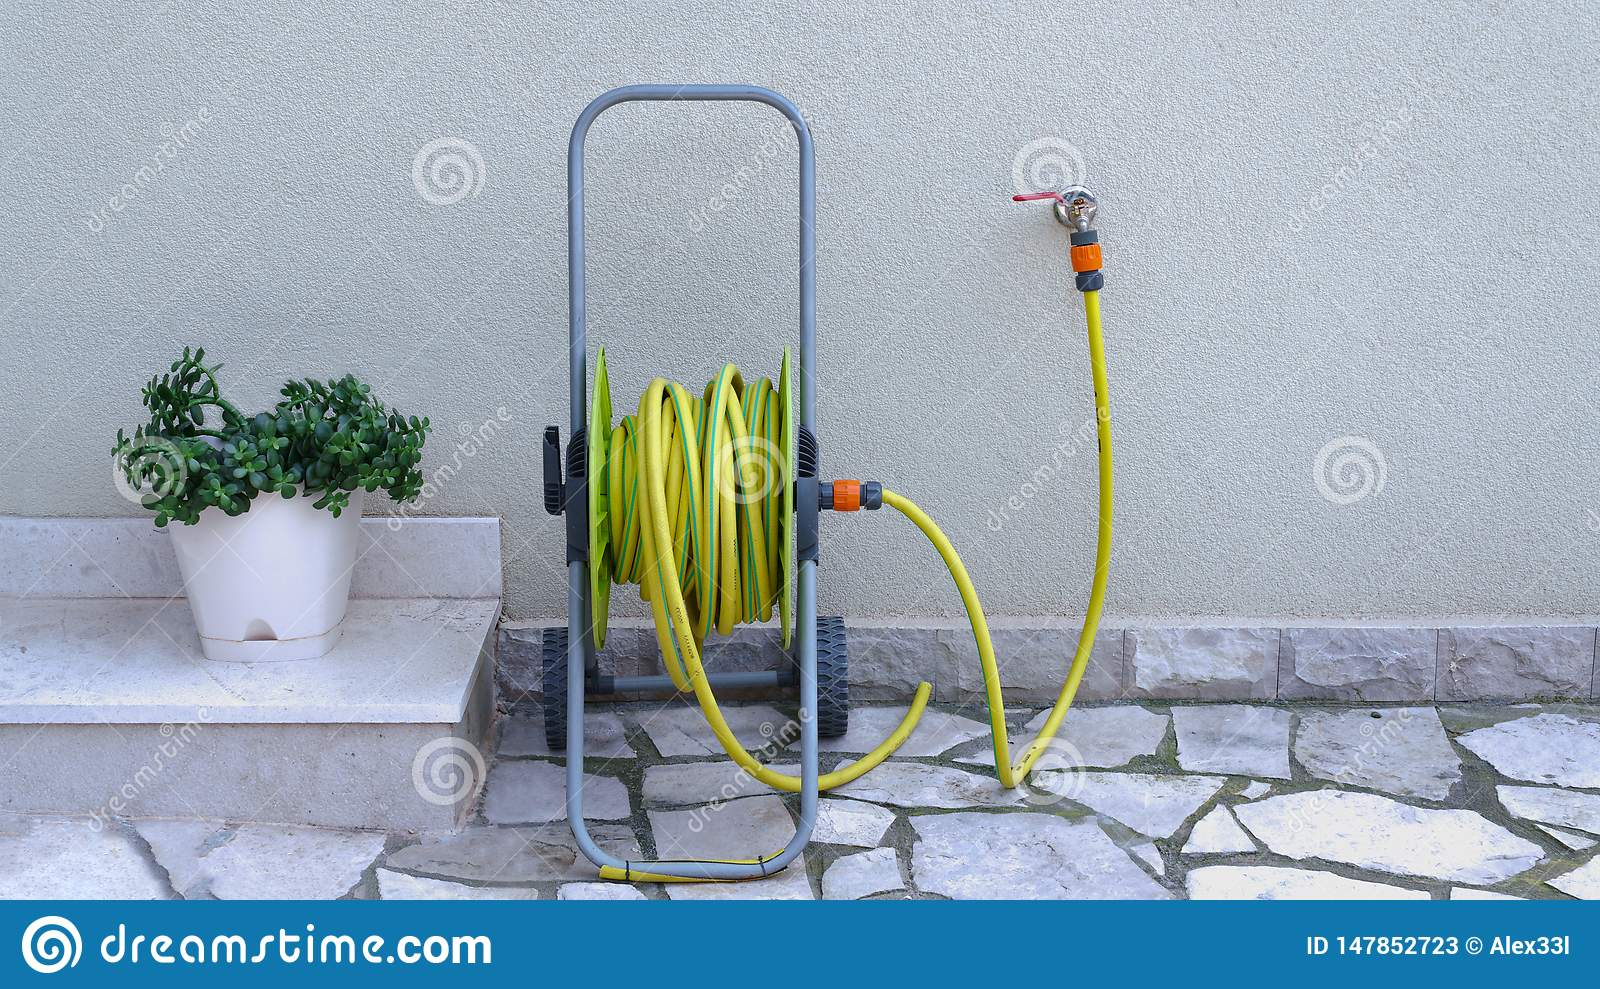 Garden hose for irrigation near the house wall